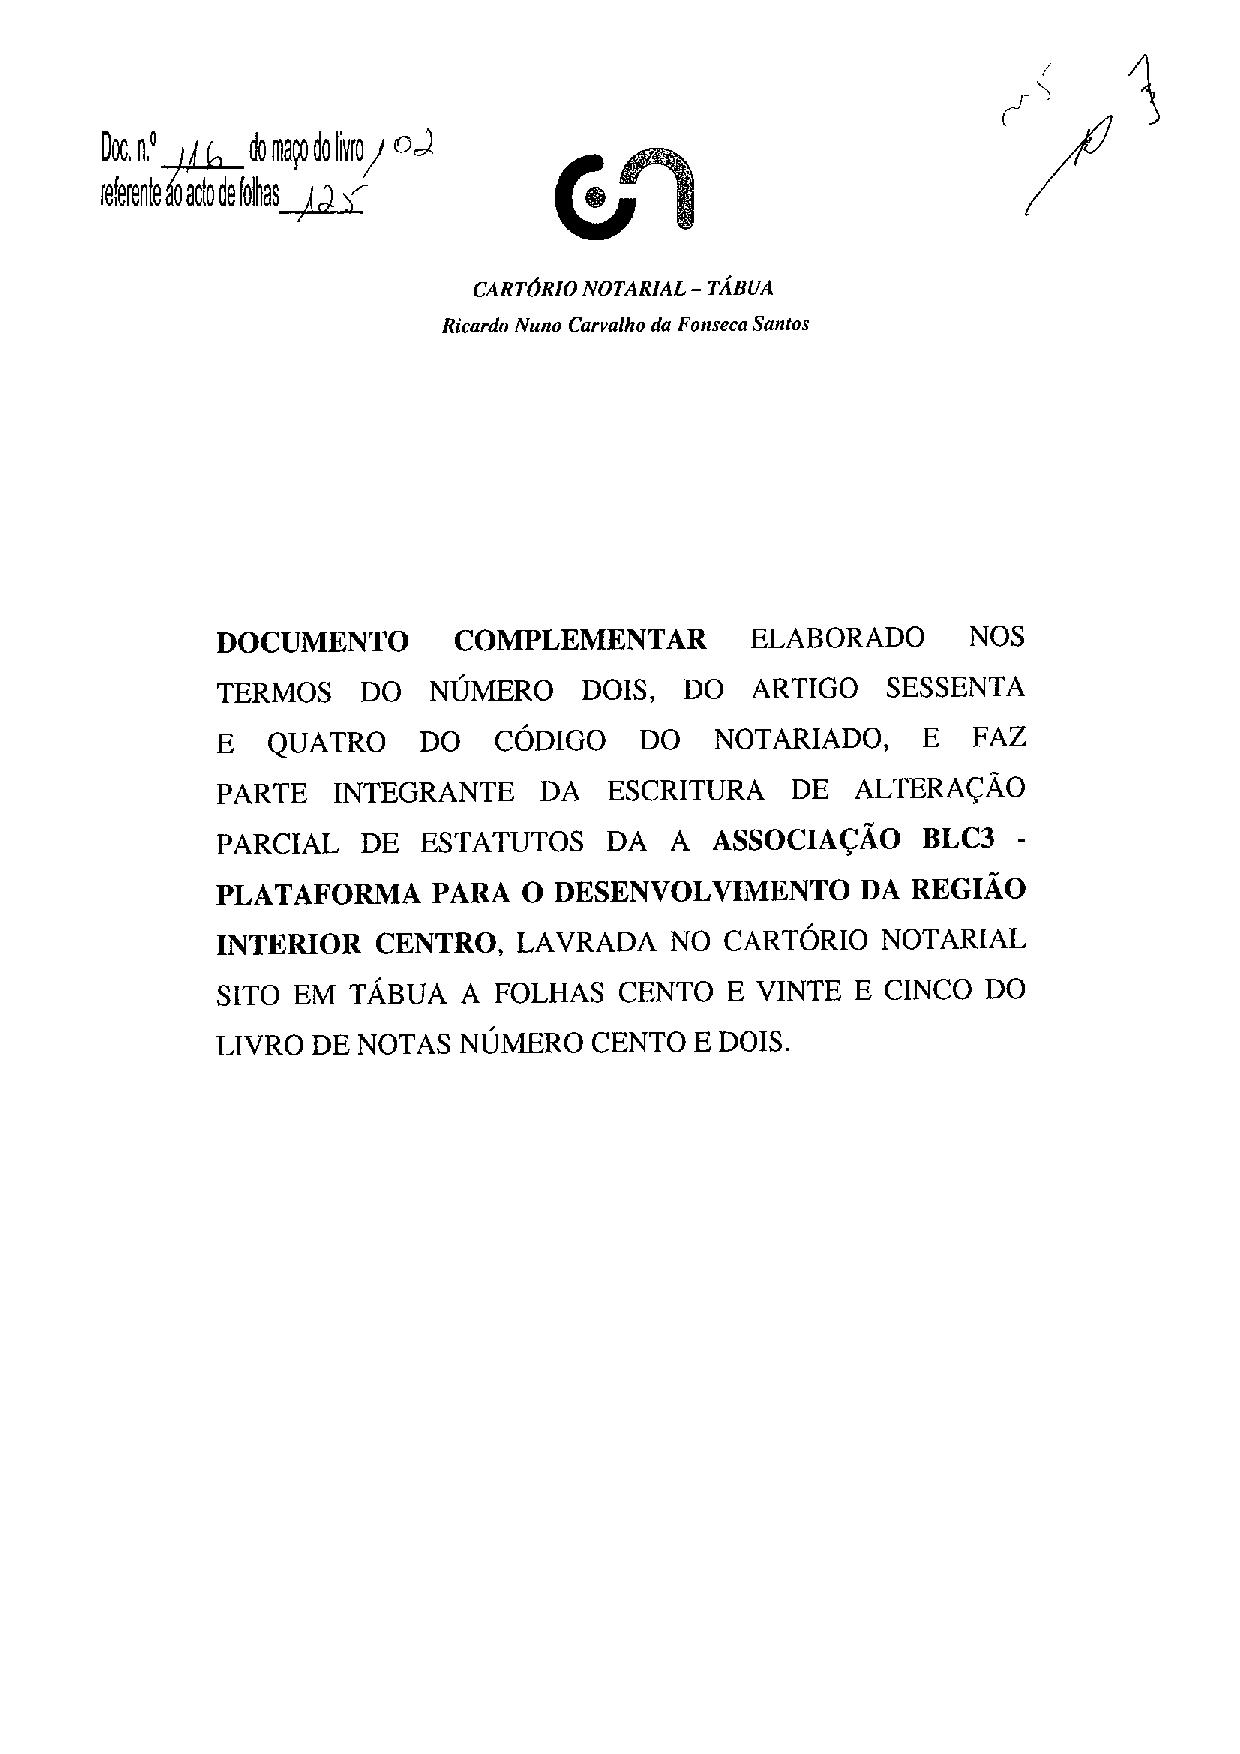 509402267_Associacao_BLC_3a_alteracao (1)-page-006